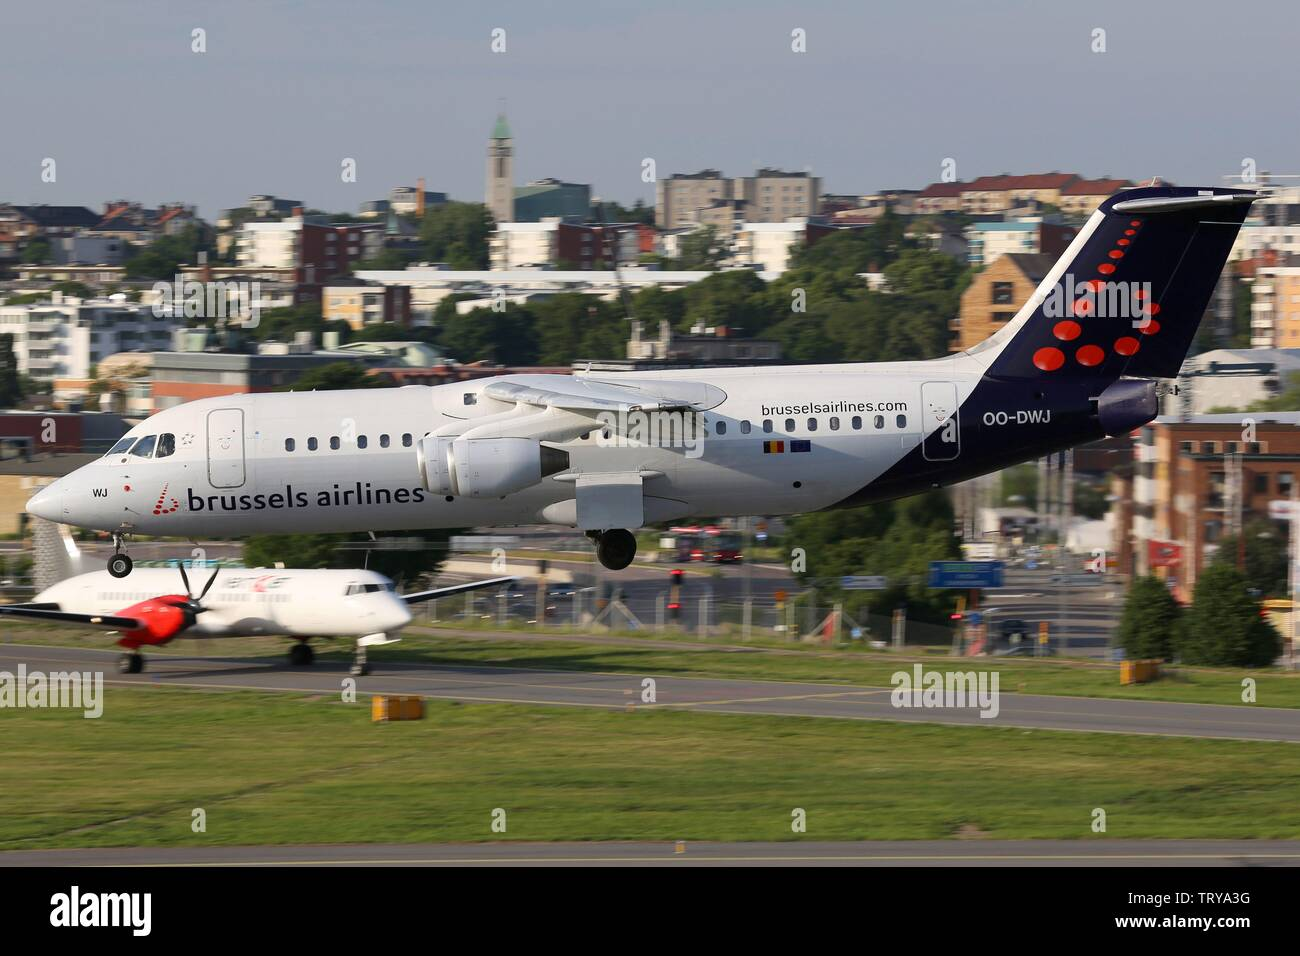 Stockholm, Sweden - 25. June 2013: Brussels Airlines British Aerospace Avro 146-RJ100 at Stockholm Bromma airport (BMA) in Sweden. | usage worldwide - Stock Image